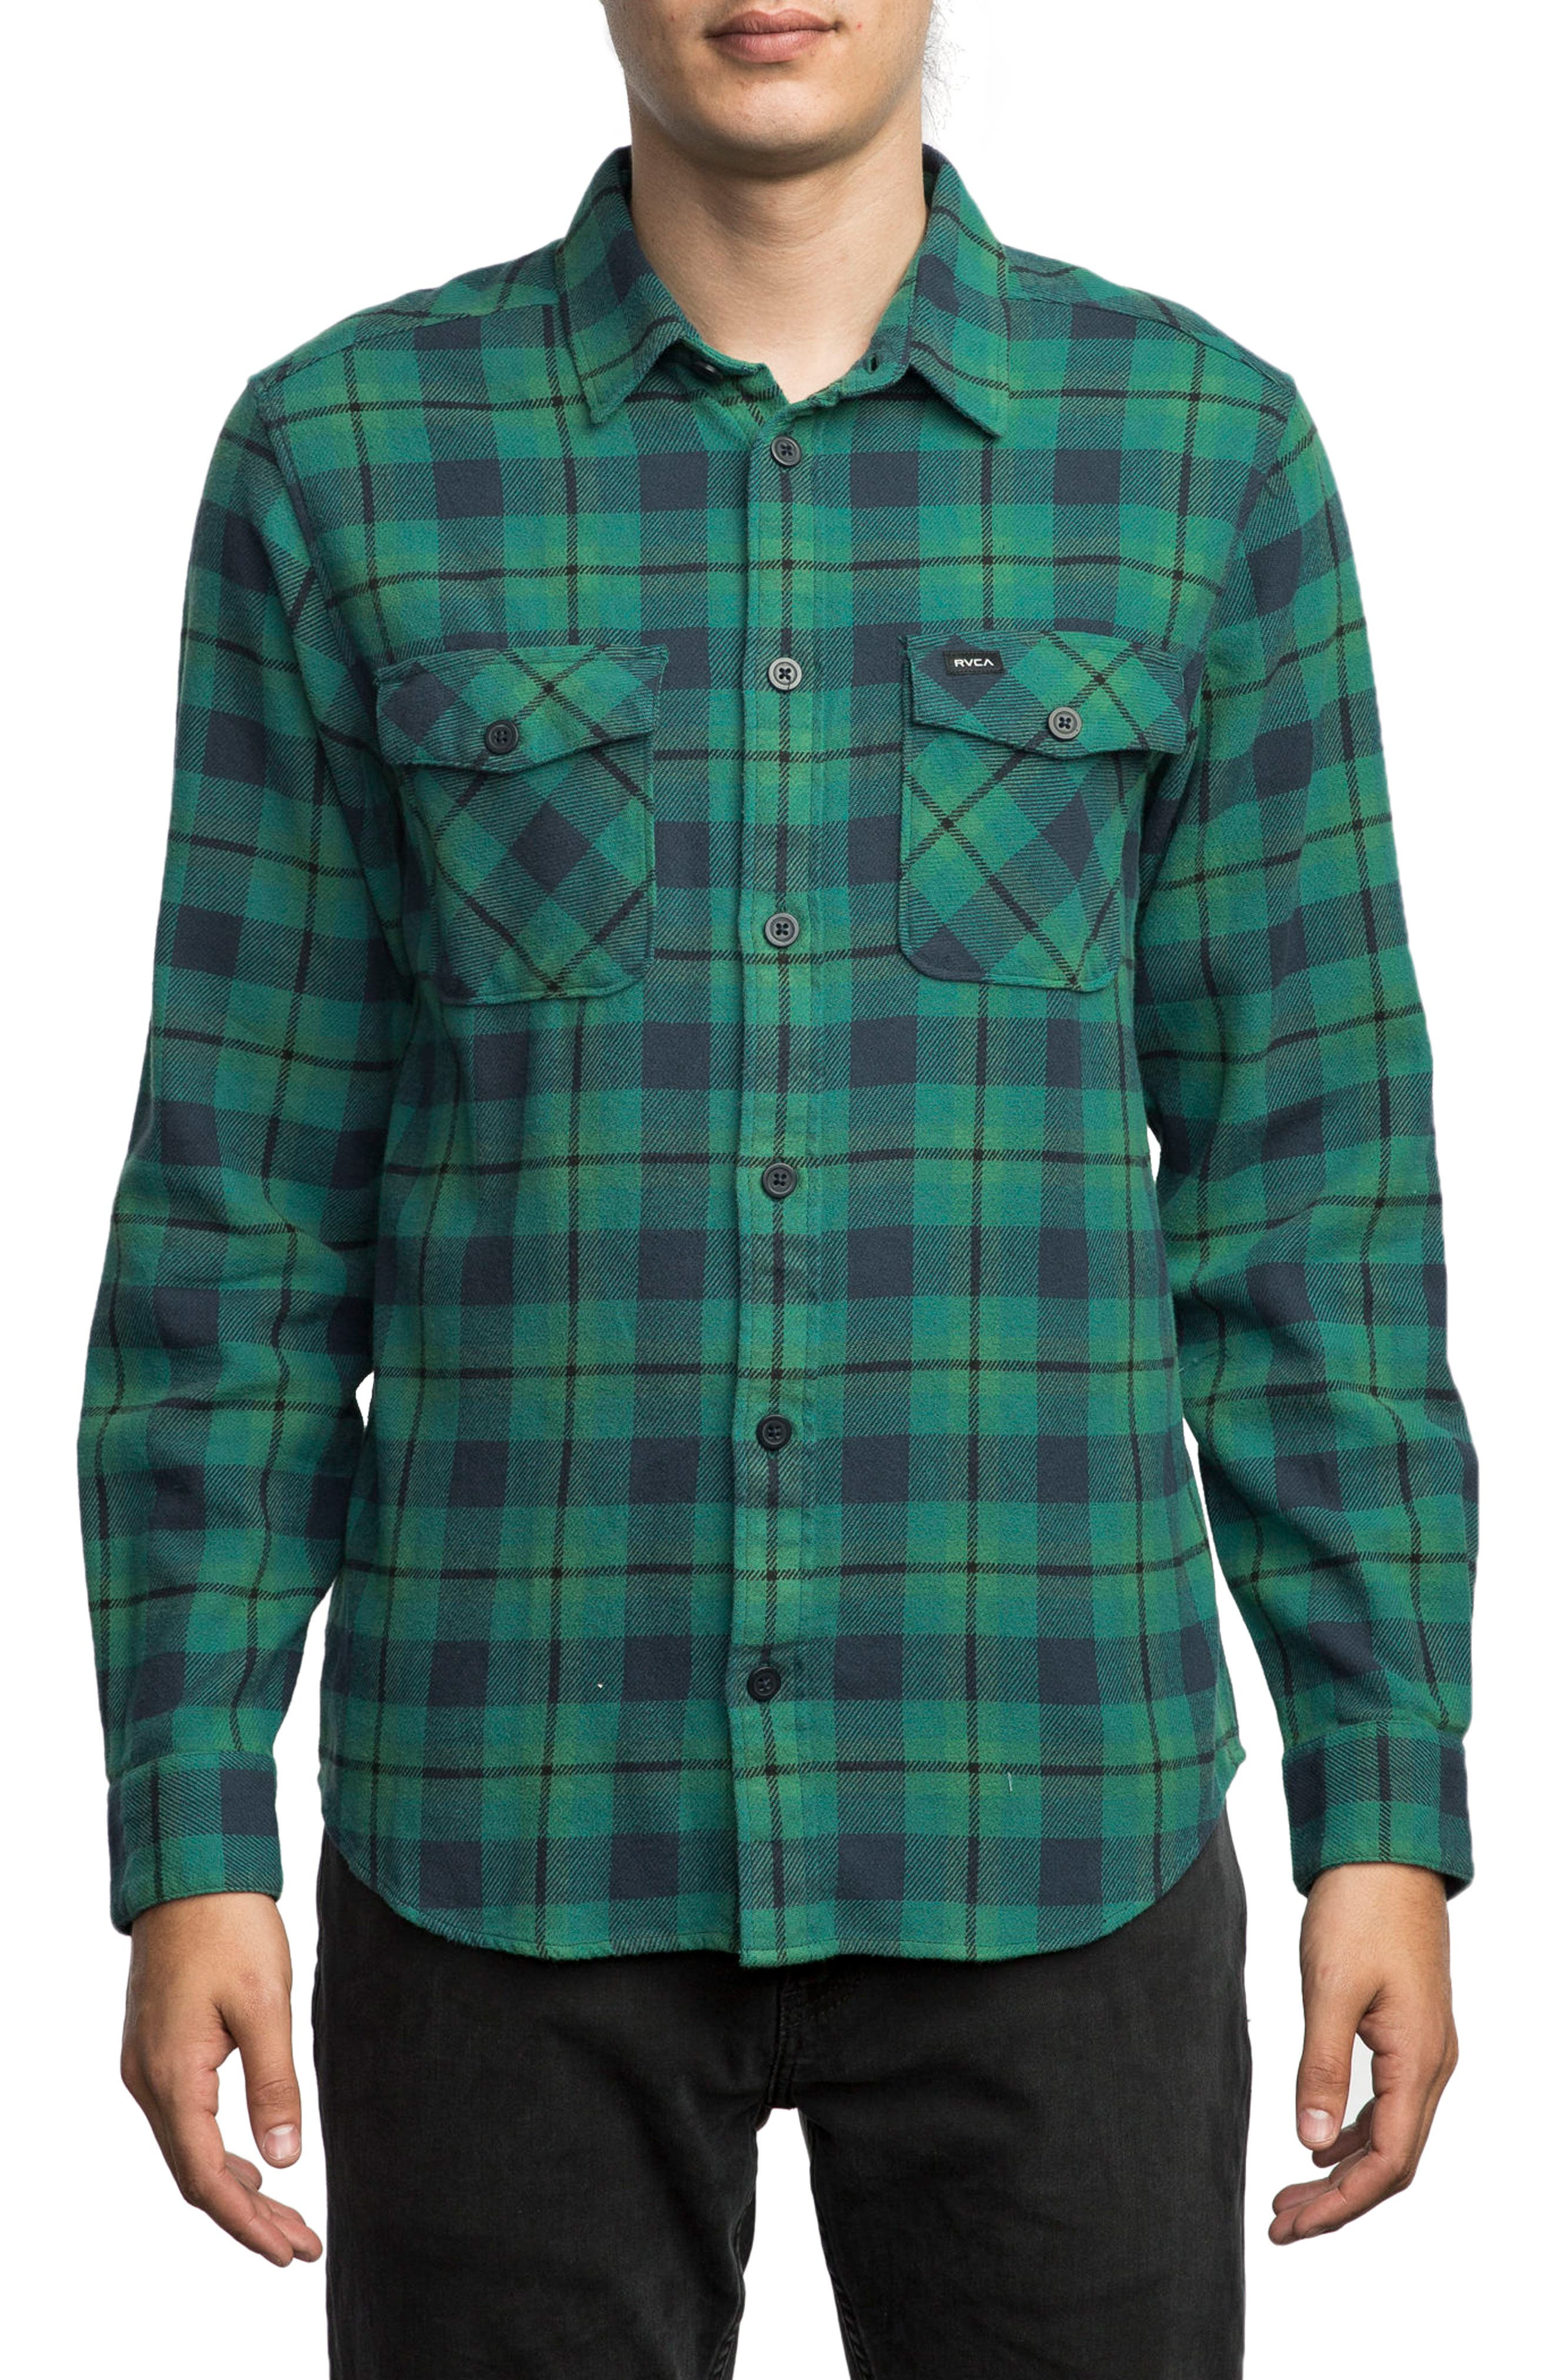 Alternate Image 1 Selected - RVCA 'That'll Work' Trim Fit Plaid Flannel Shirt